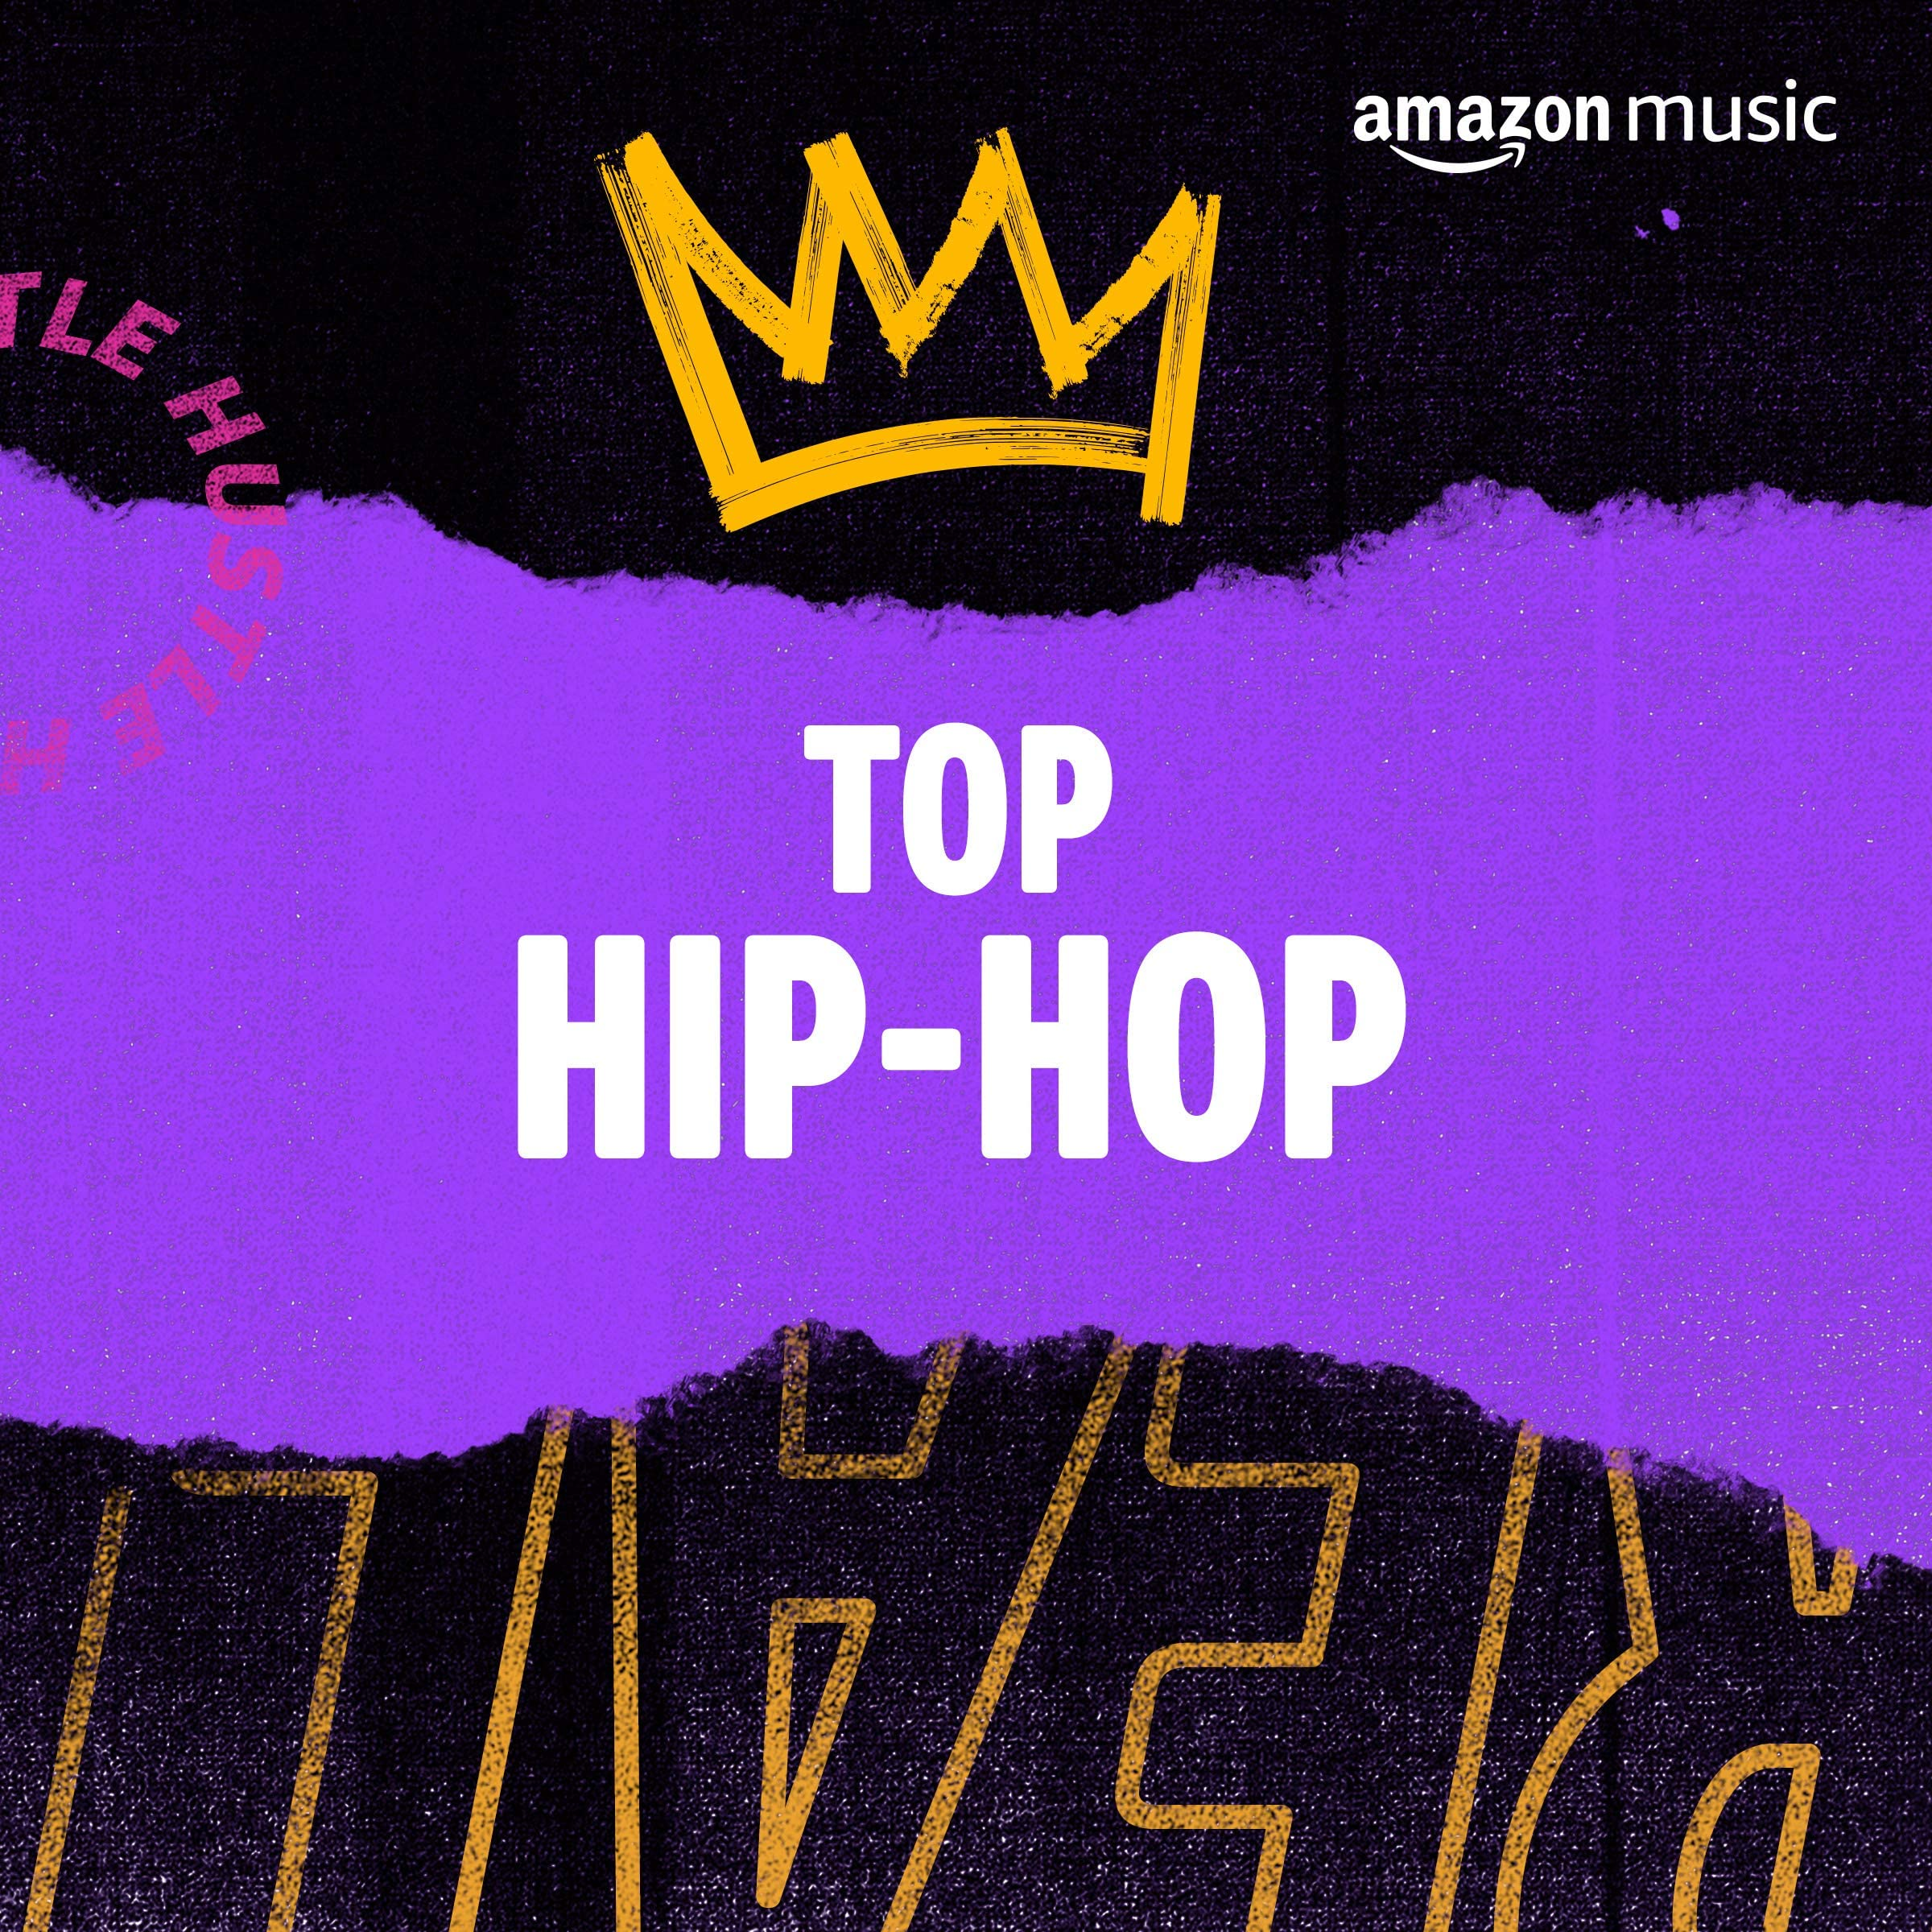 Top Hip-Hop